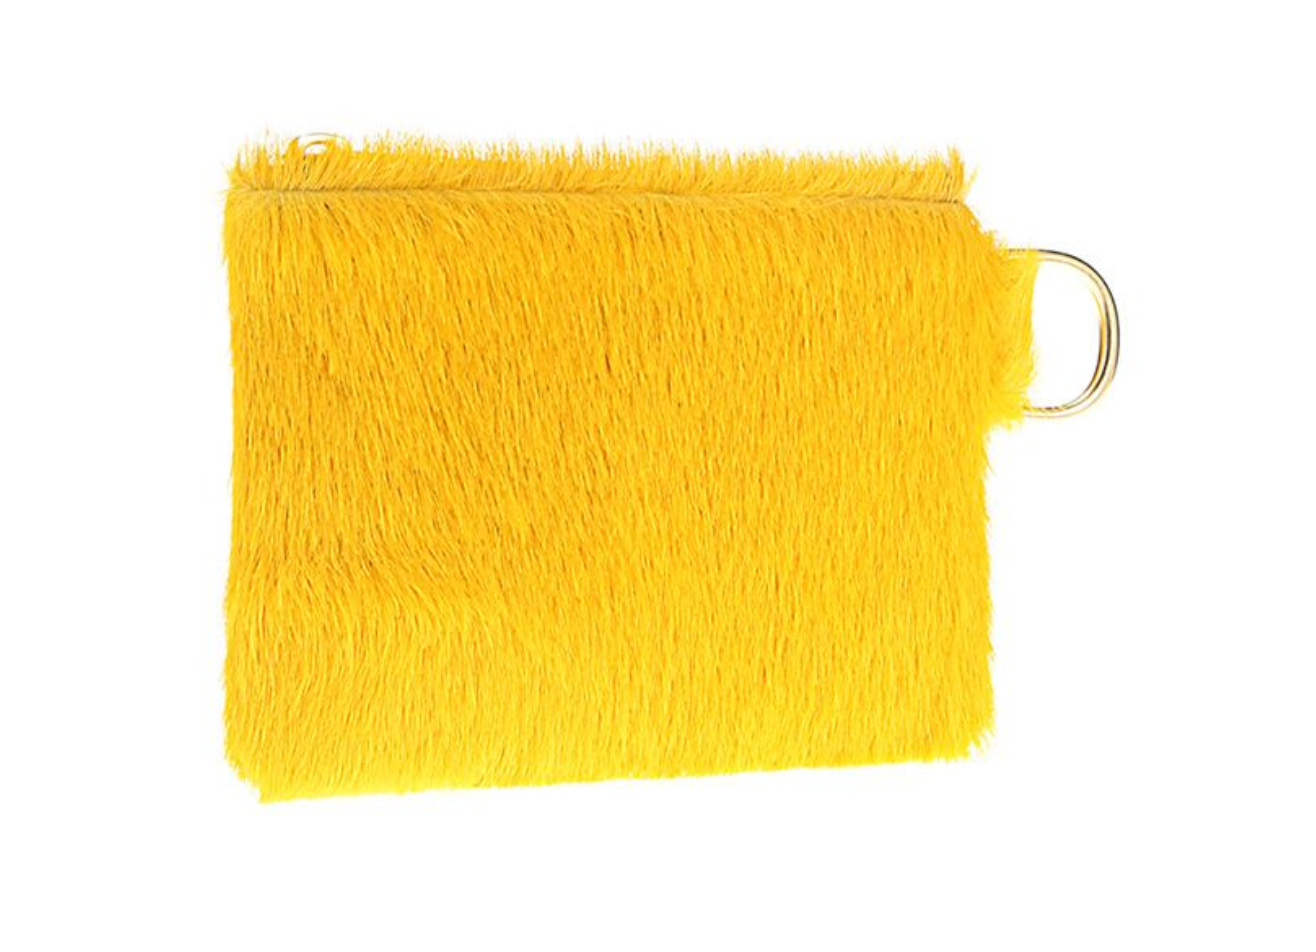 Zip Pouch in Marigold